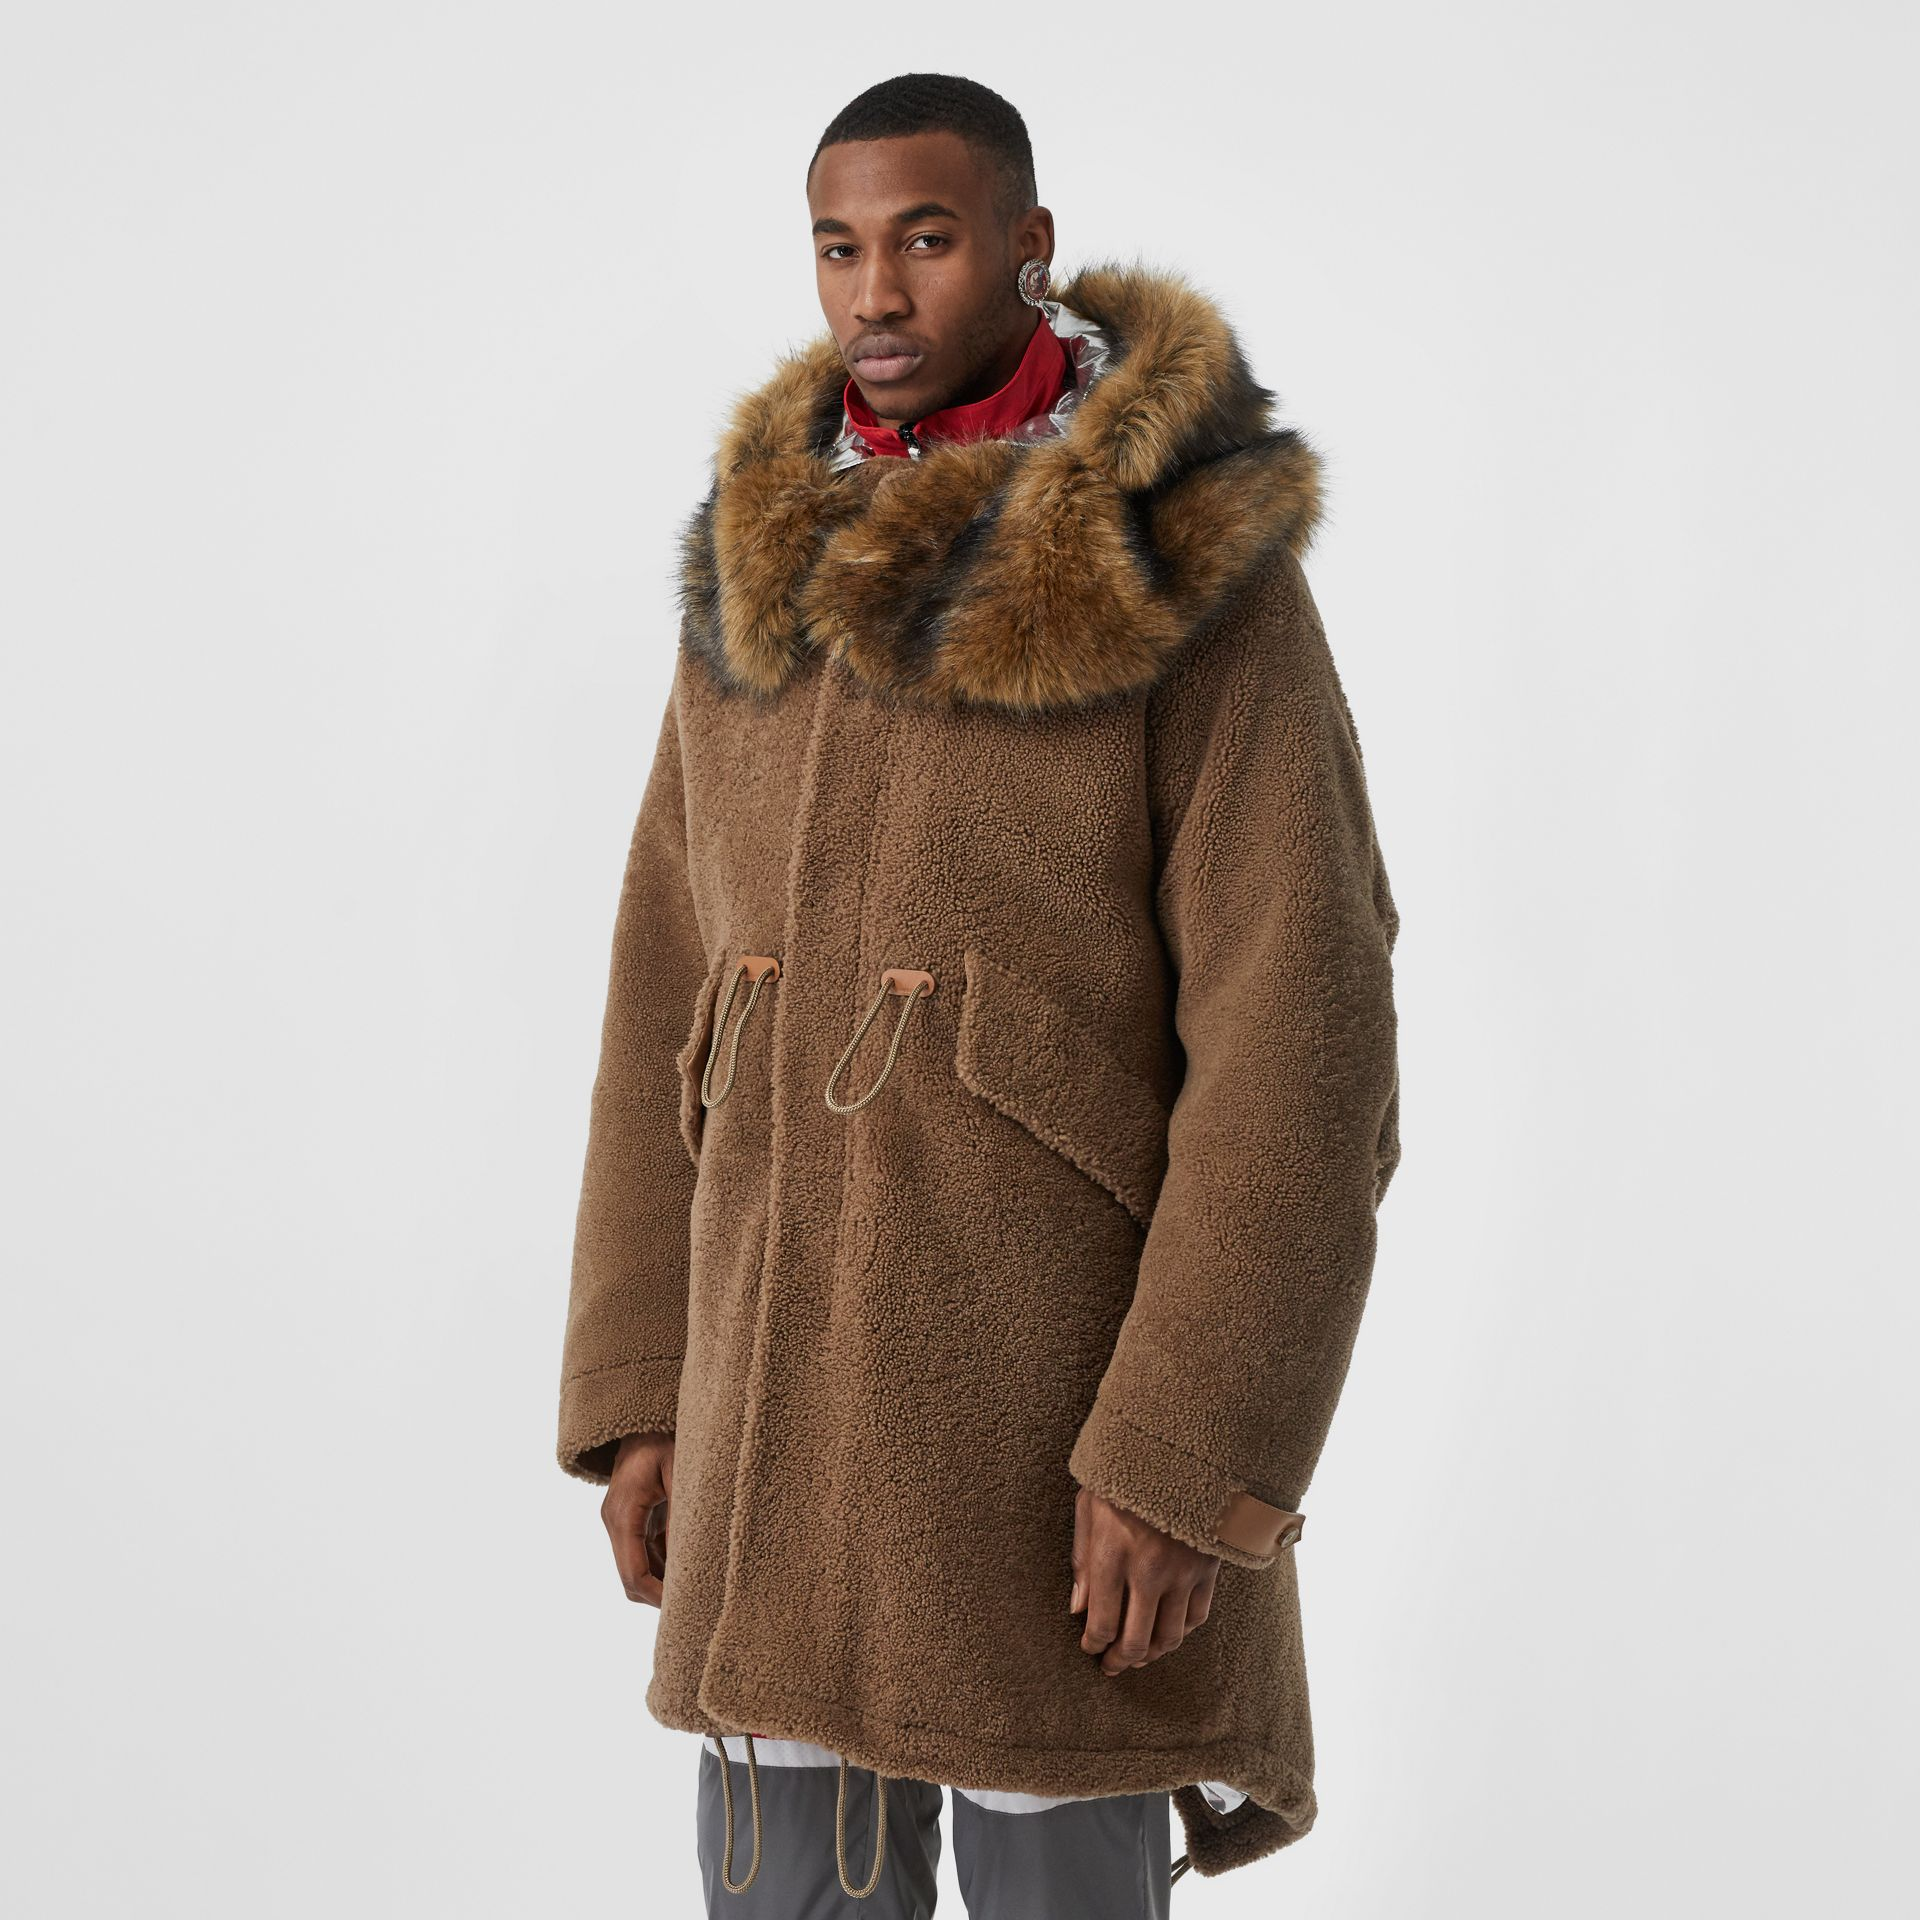 Shearling Parka with Detachable Hood and Jacket in Pale Coffee - Men | Burberry Australia - gallery image 5